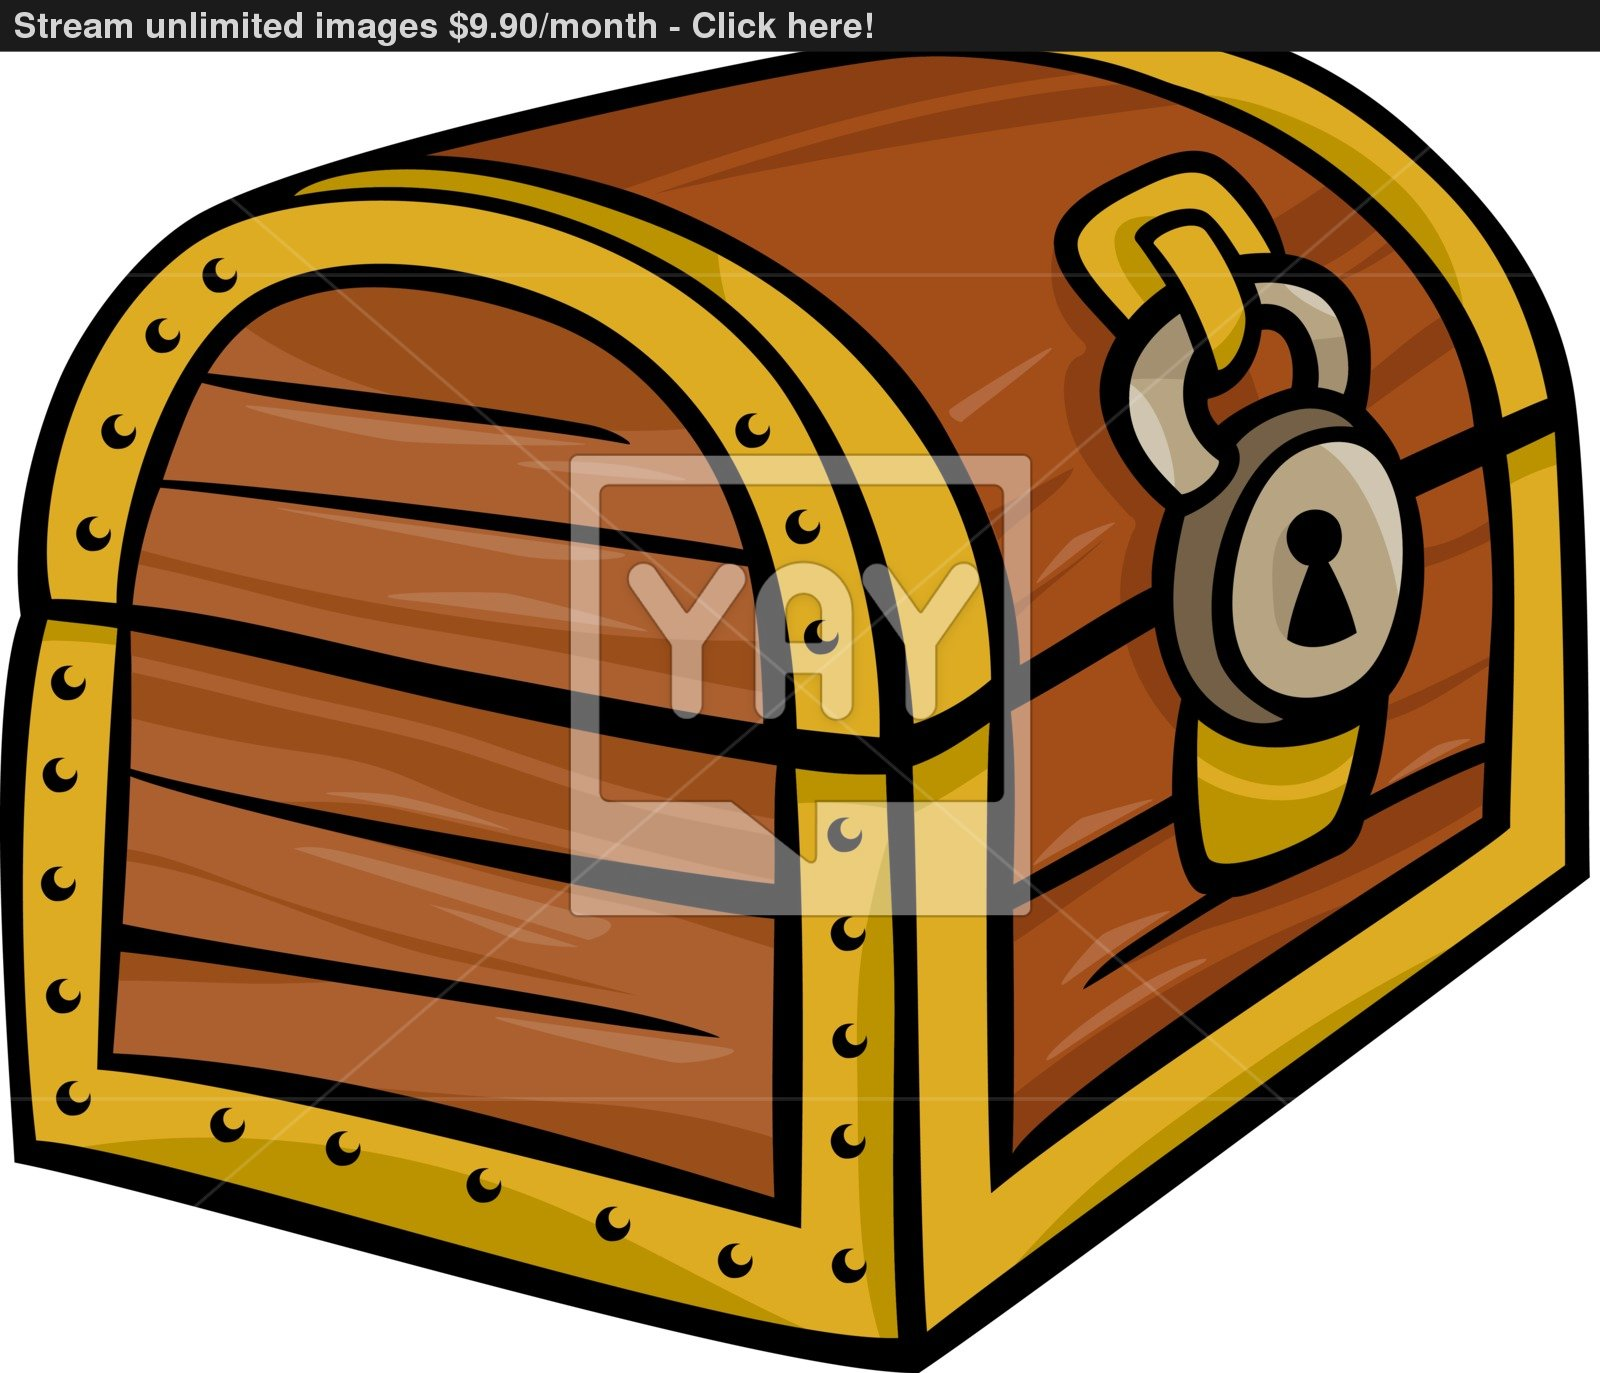 treasure chest clipart clipart panda free clipart images rh clipartpanda com treasure chest clip art black and white treasure chest clipart black and white